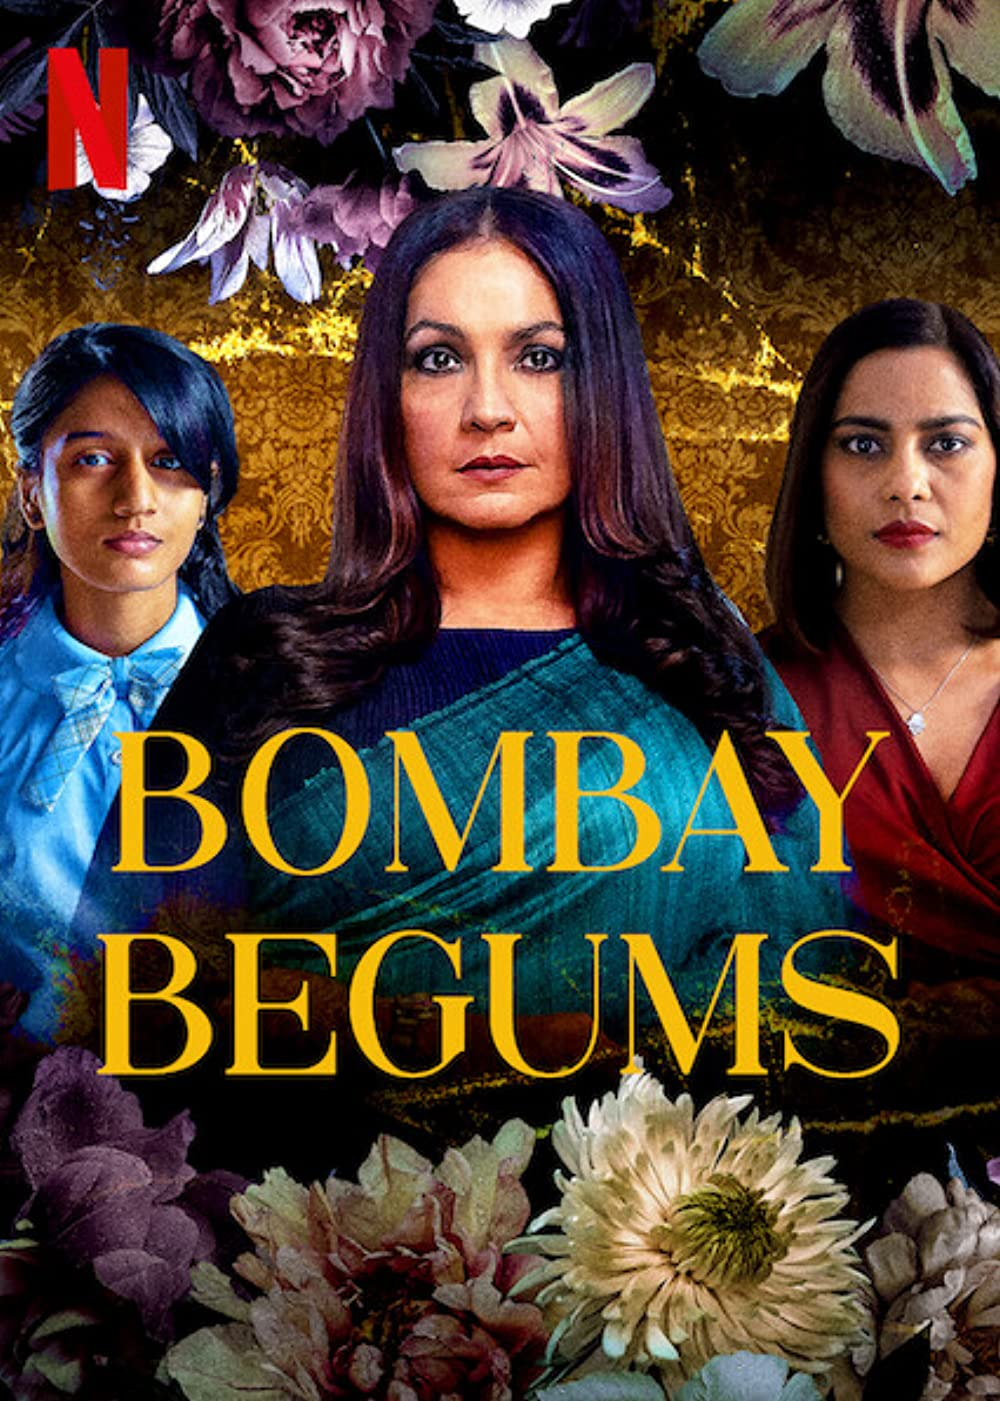 Bombay Begums 2021 S01 Hindi Netflix Original Complete Web Series 1080p HDRip 4200MB Download